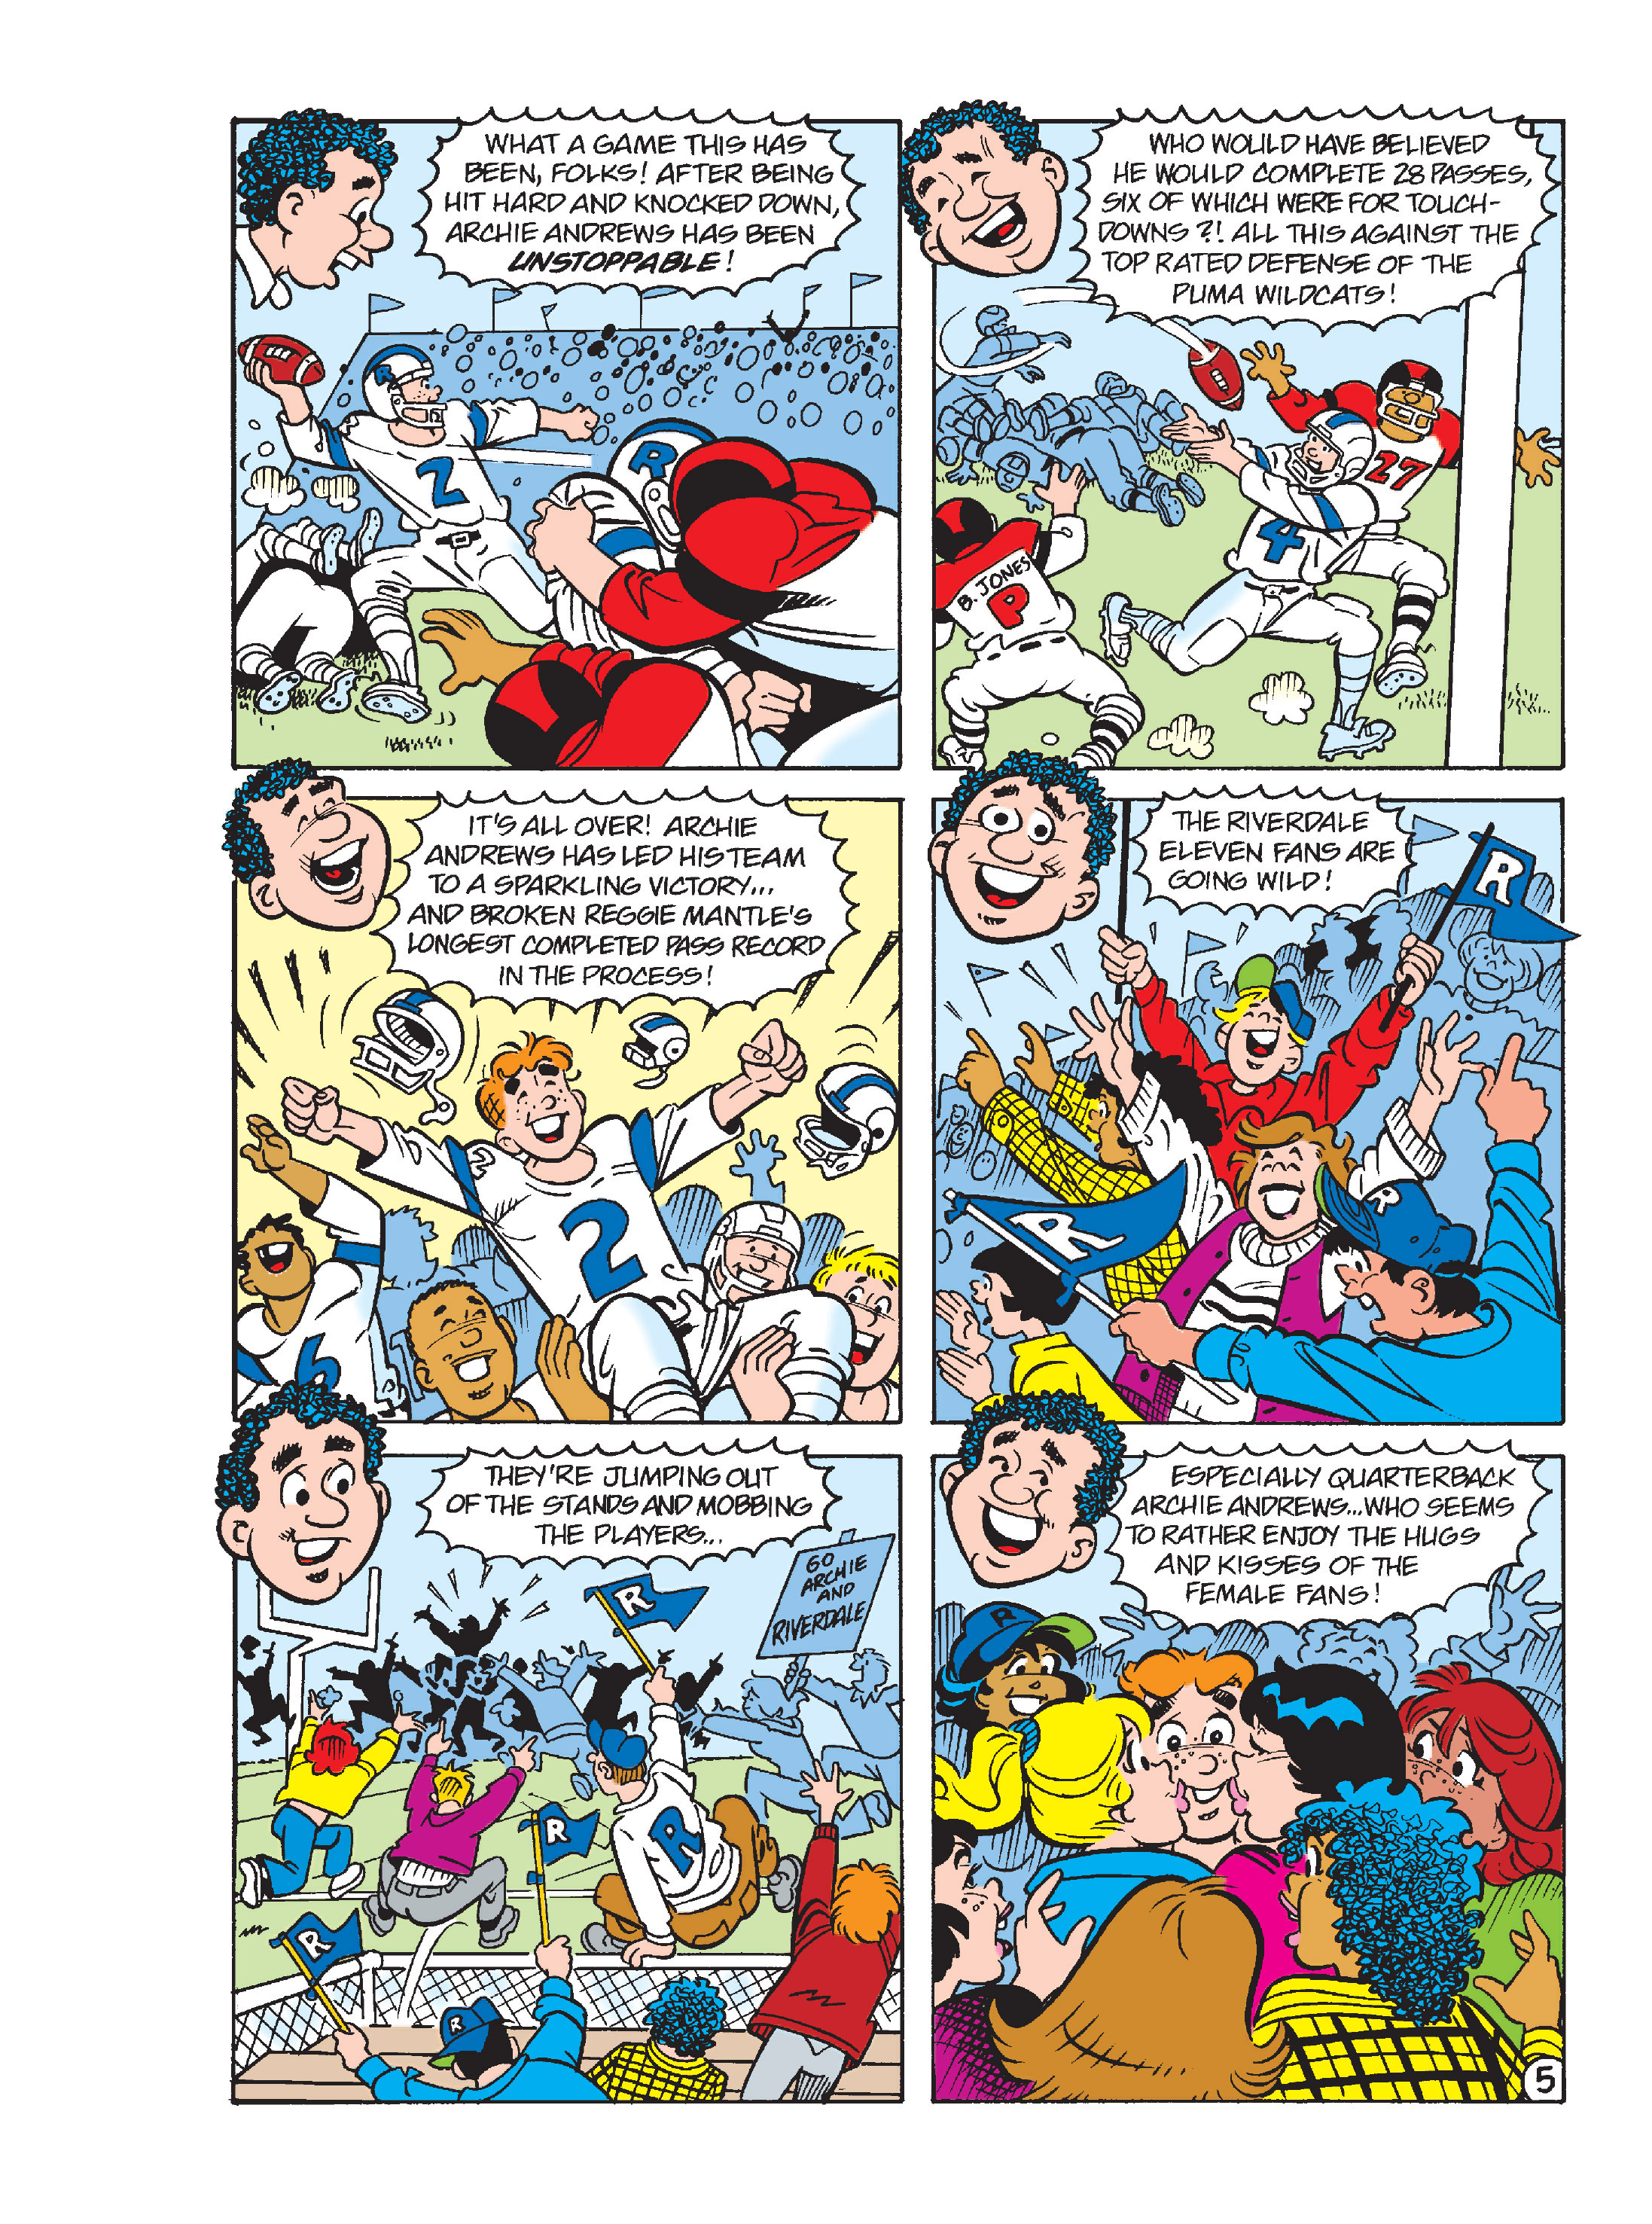 Read online World of Archie Double Digest comic -  Issue #55 - 194